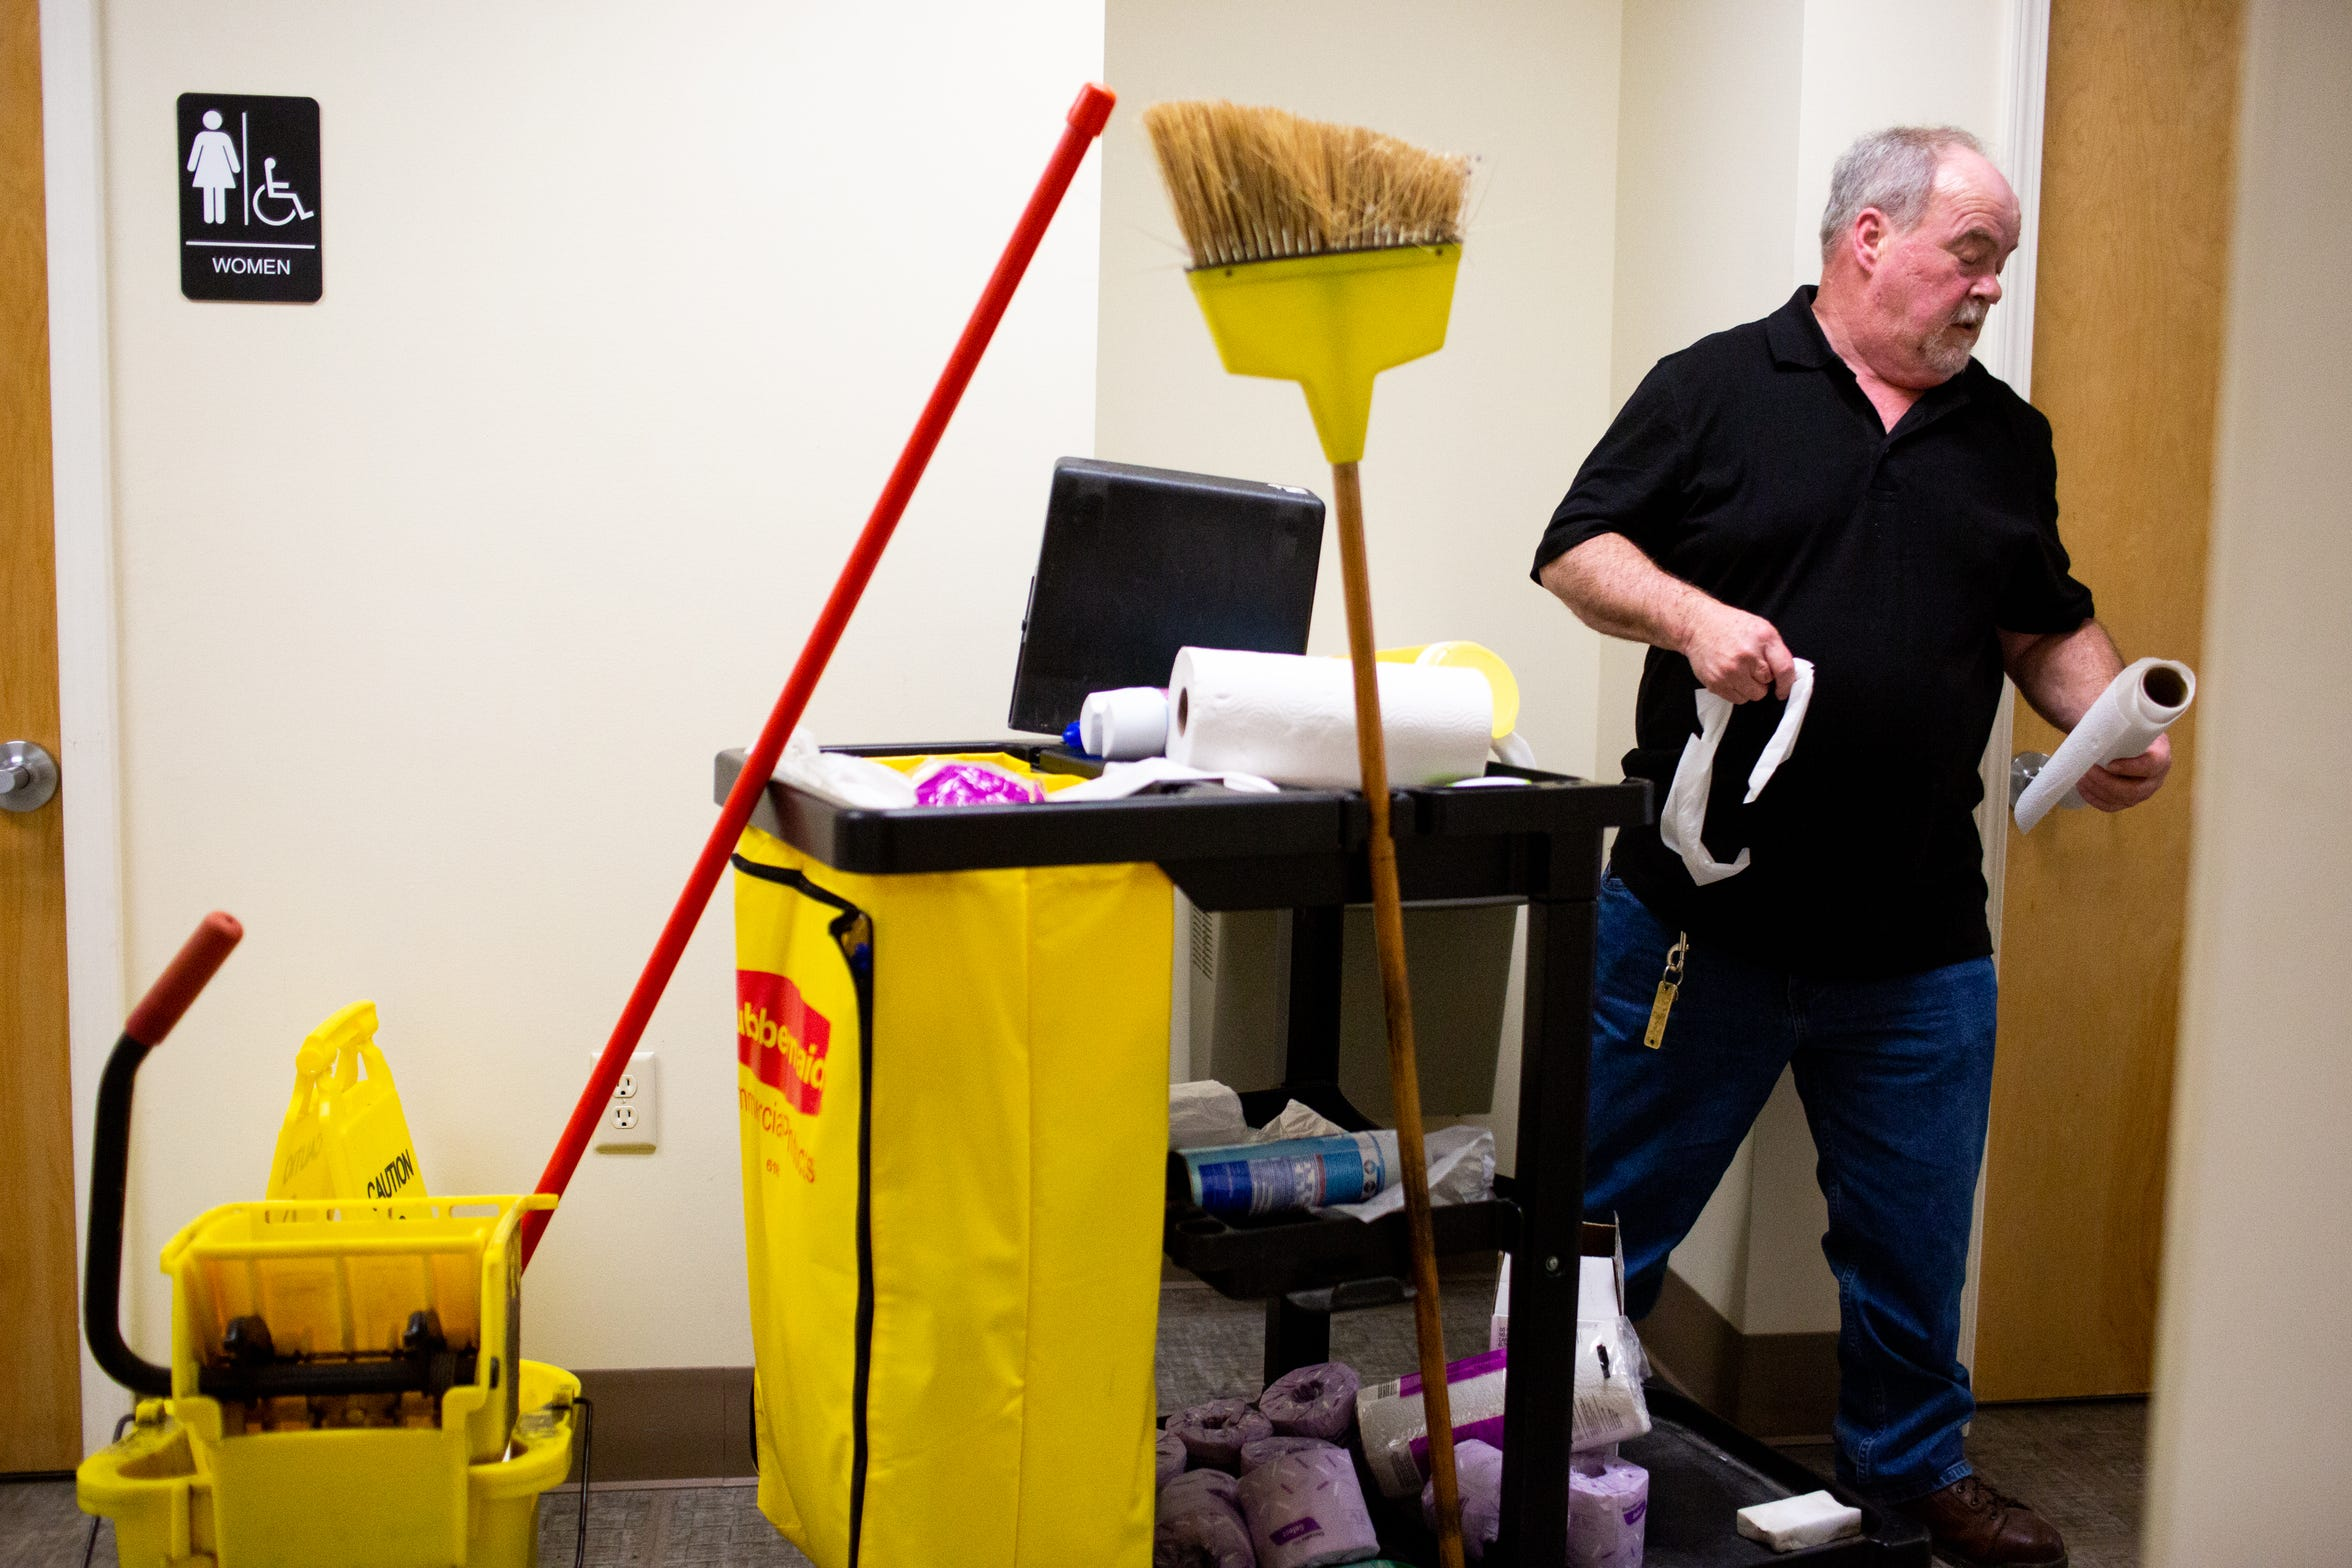 Larry Elmore works as a janitor at Upper Cumberland Human Resource Agency in Cookeville, Tenn. The job has restored a semblance of normalcy to a life once mired in chaos.